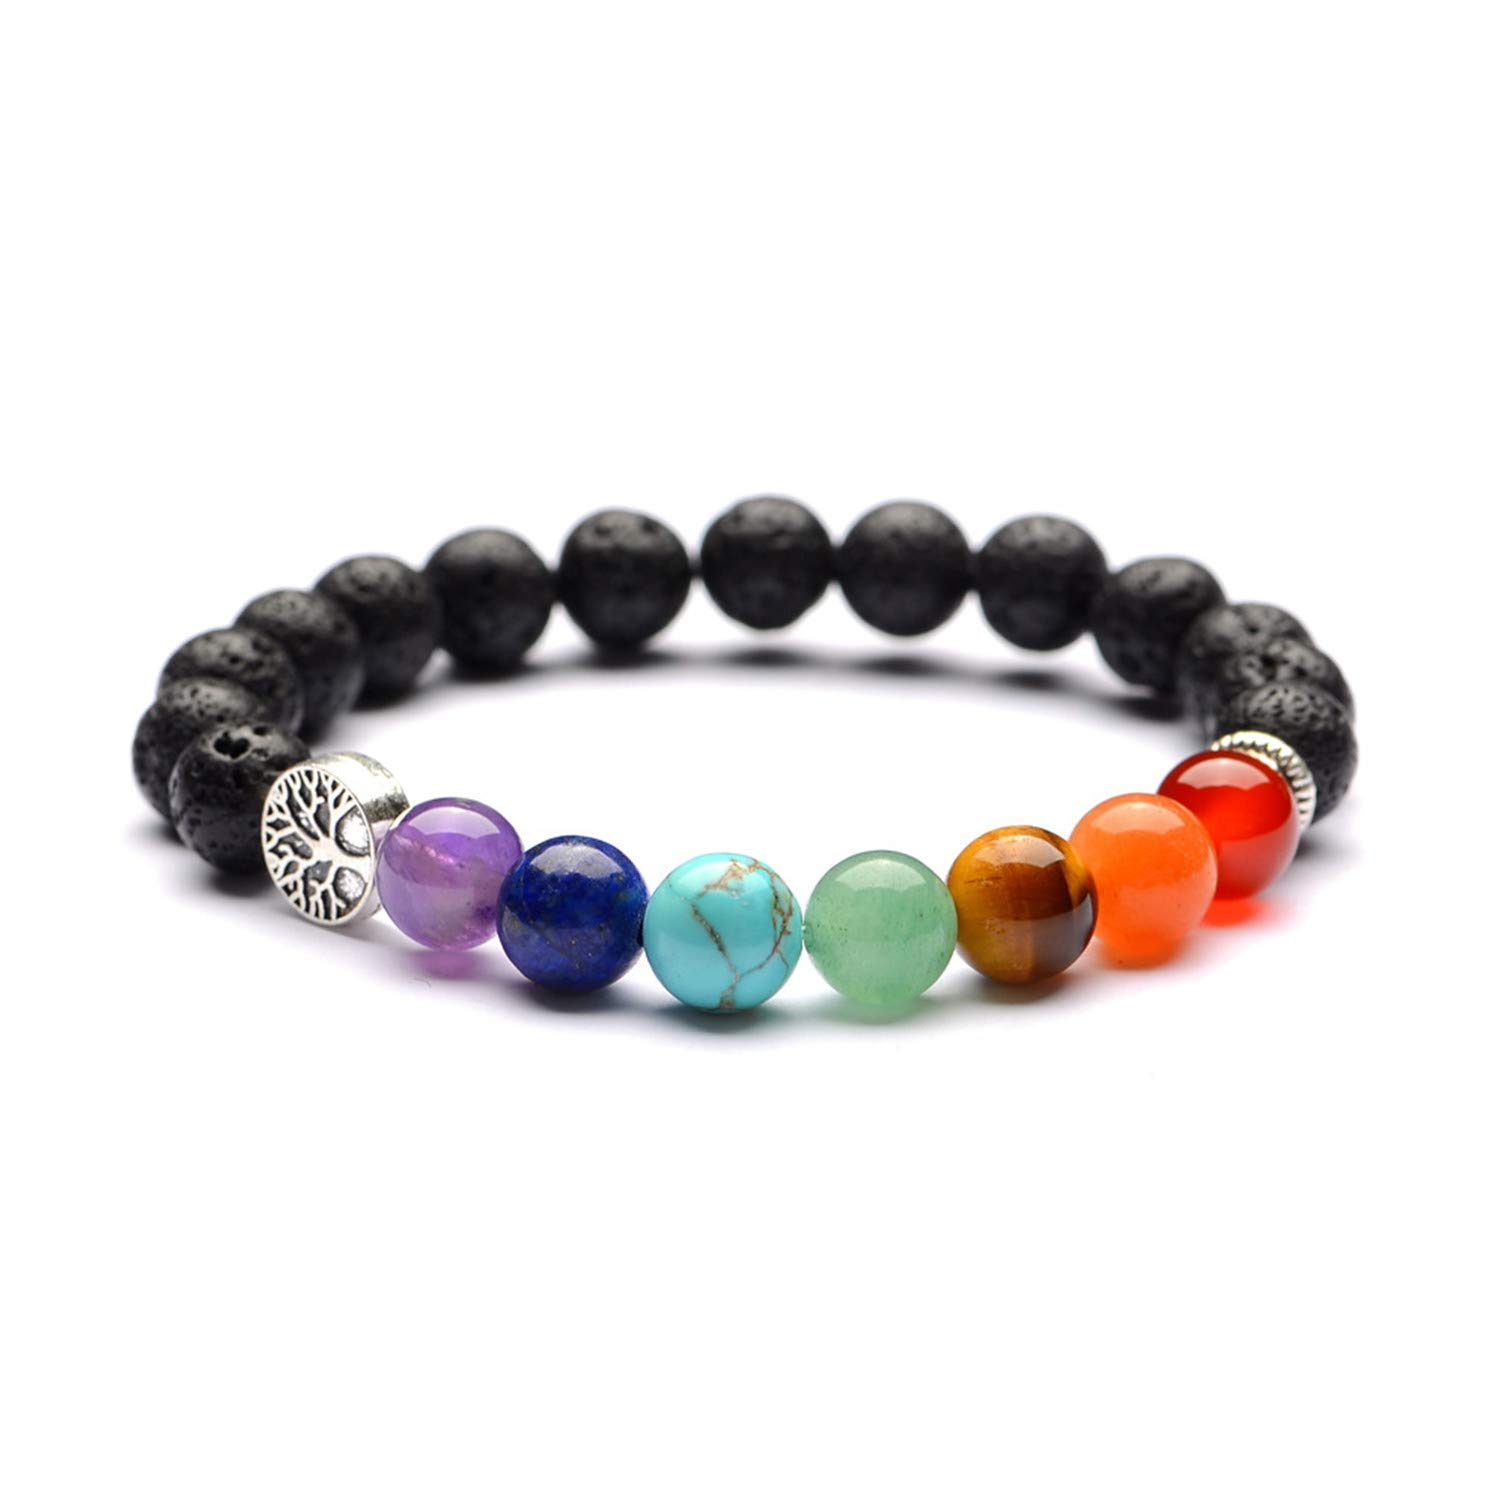 8mm Lava Rock Beads Bracelet Elastic Natural Stone Chakra Yoga Bracelet Bangle LoveBIG CA0004